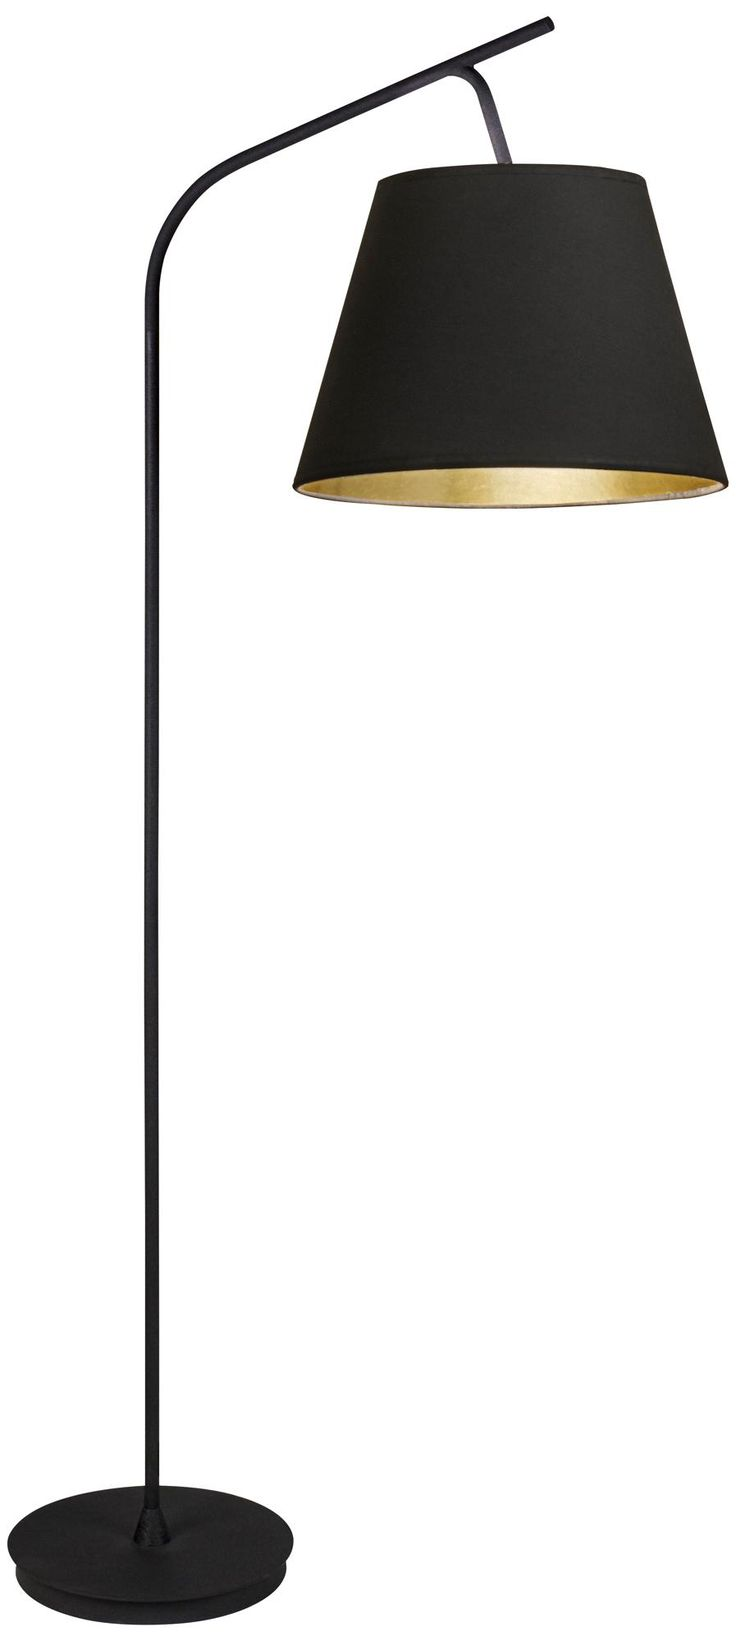 ^ 1000+ ideas about rc Floor Lamps on Pinterest Interior lighting ...